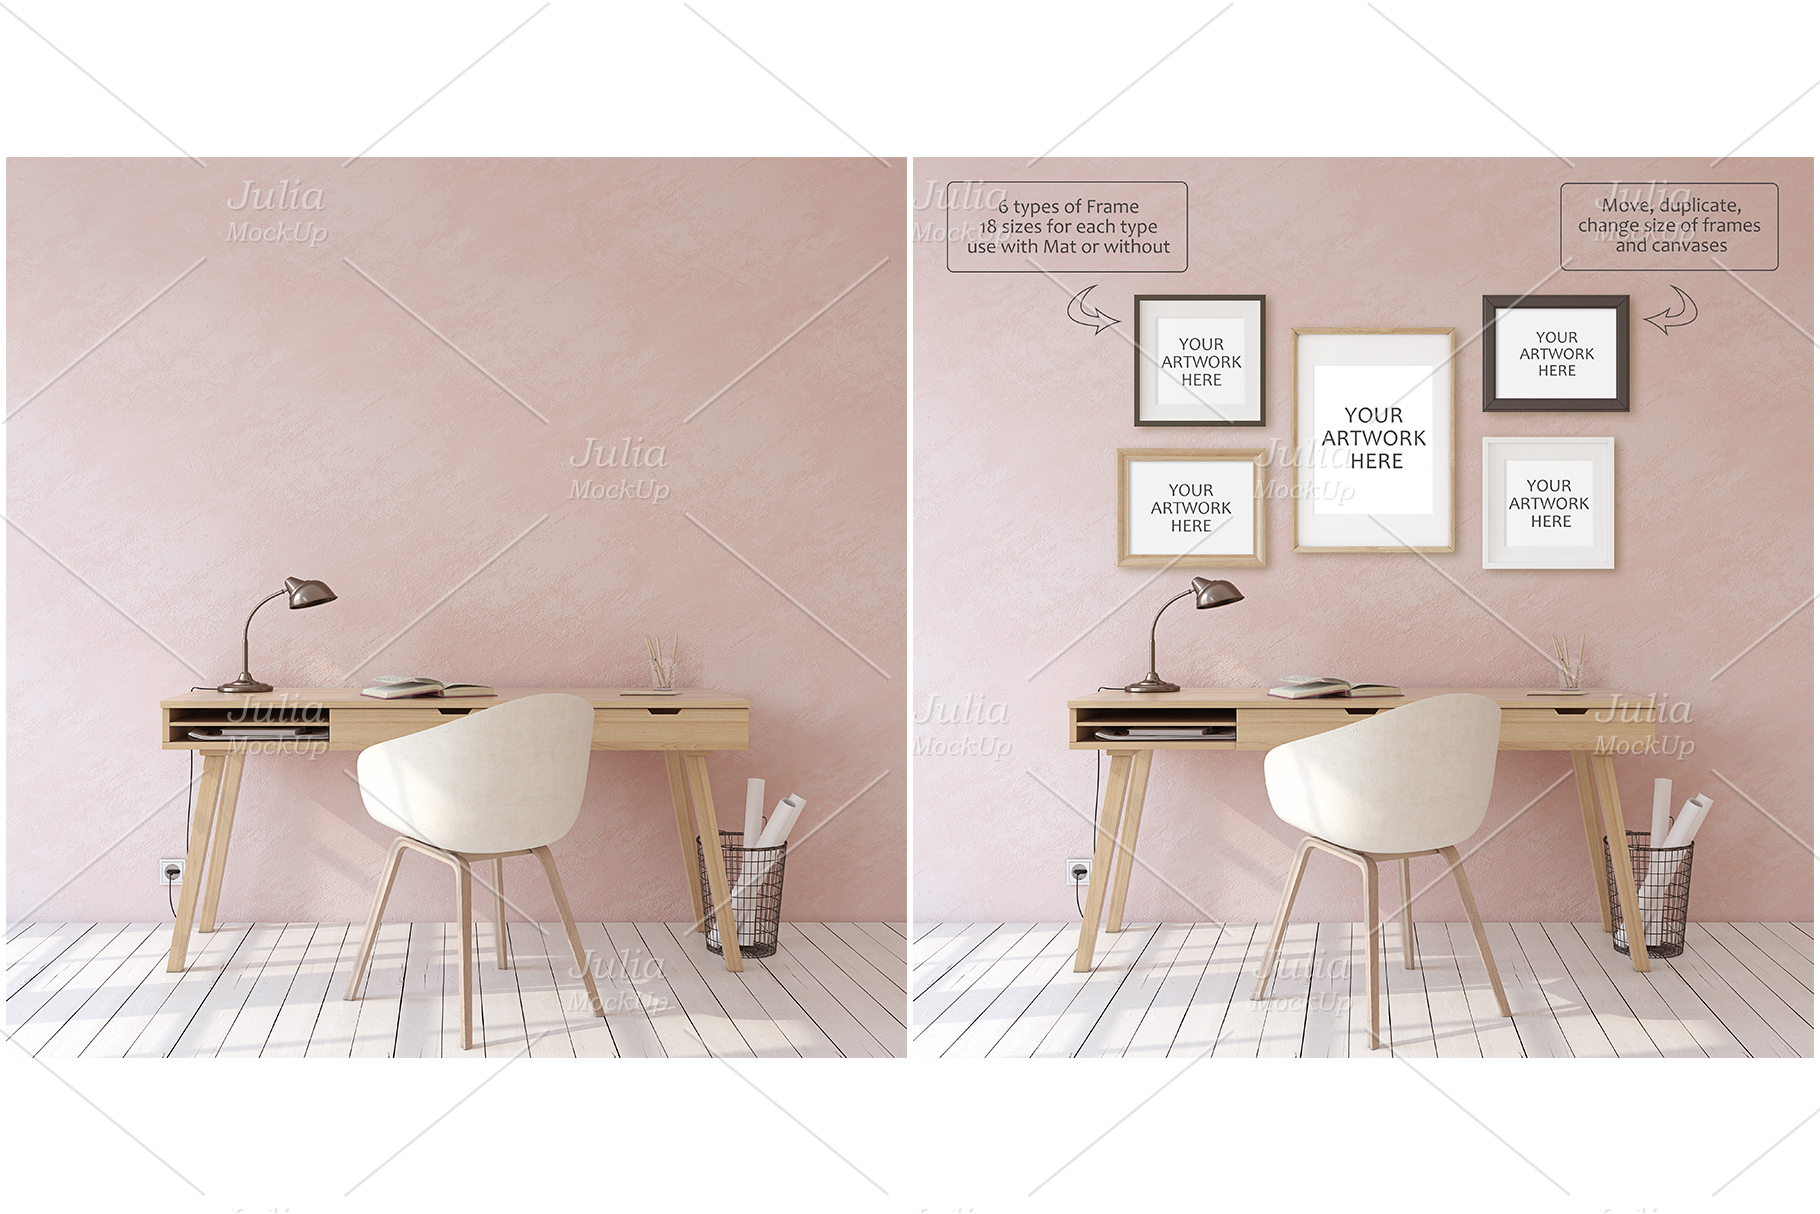 Home office. Frames&Canvases Mockup. example image 3